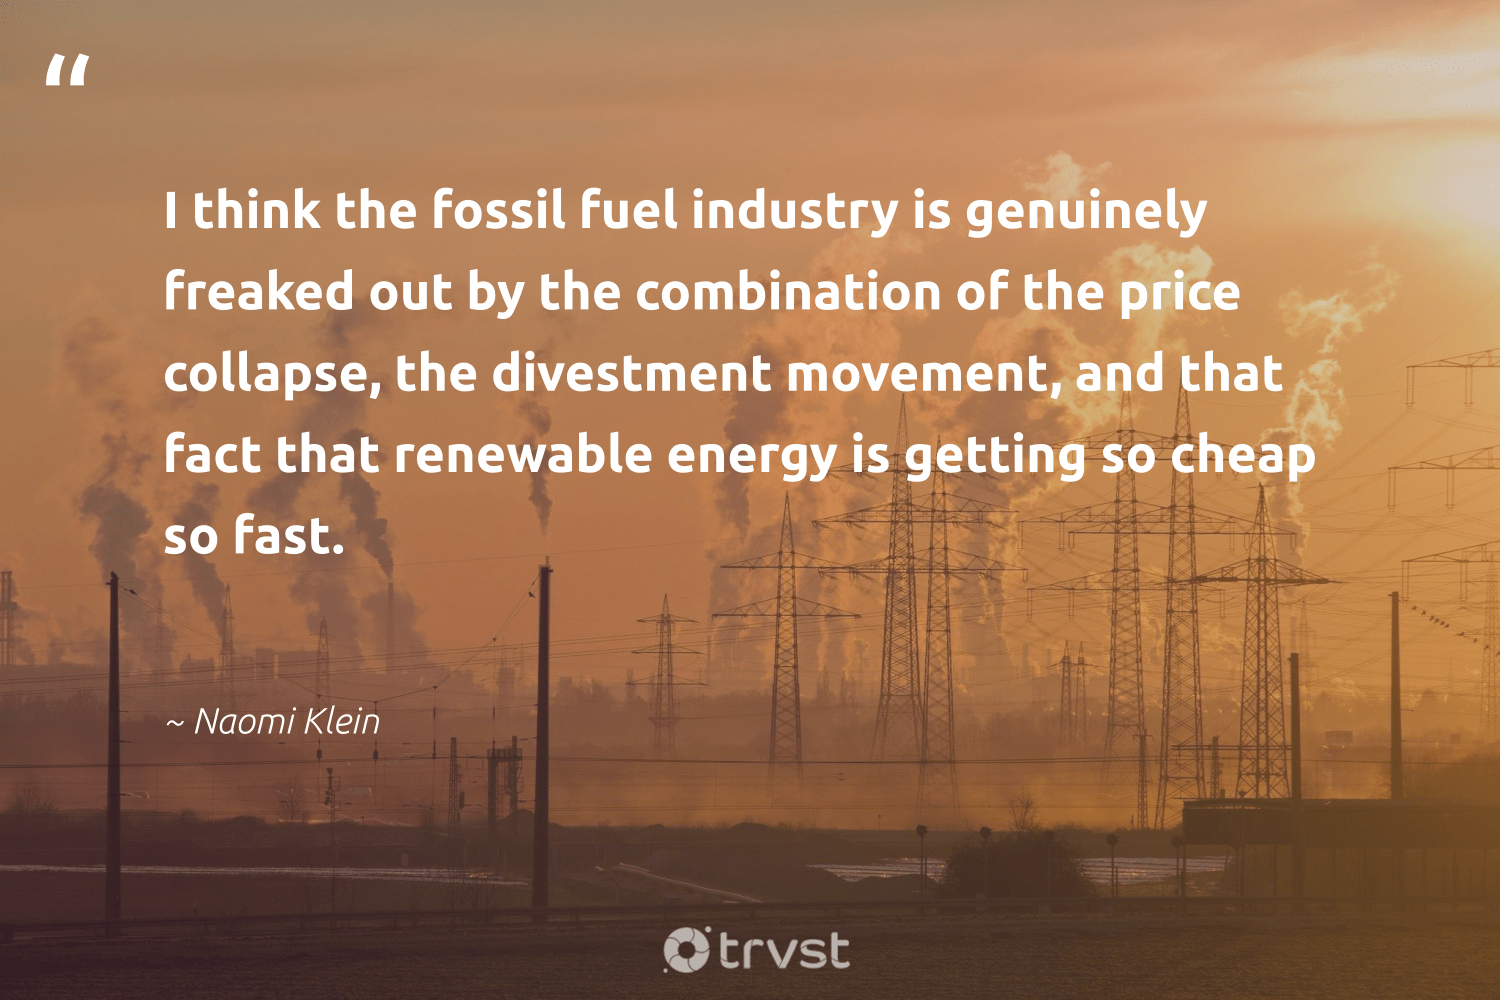 """""""I think the fossil fuel industry is genuinely freaked out by the combination of the price collapse, the divestment movement, and that fact that renewable energy is getting so cheap so fast.""""  - Naomi Klein #trvst #quotes #renewableenergy #energy #renewable #fossil #renewables #lowcarbon #environmental #nature #socialimpact #affordable"""